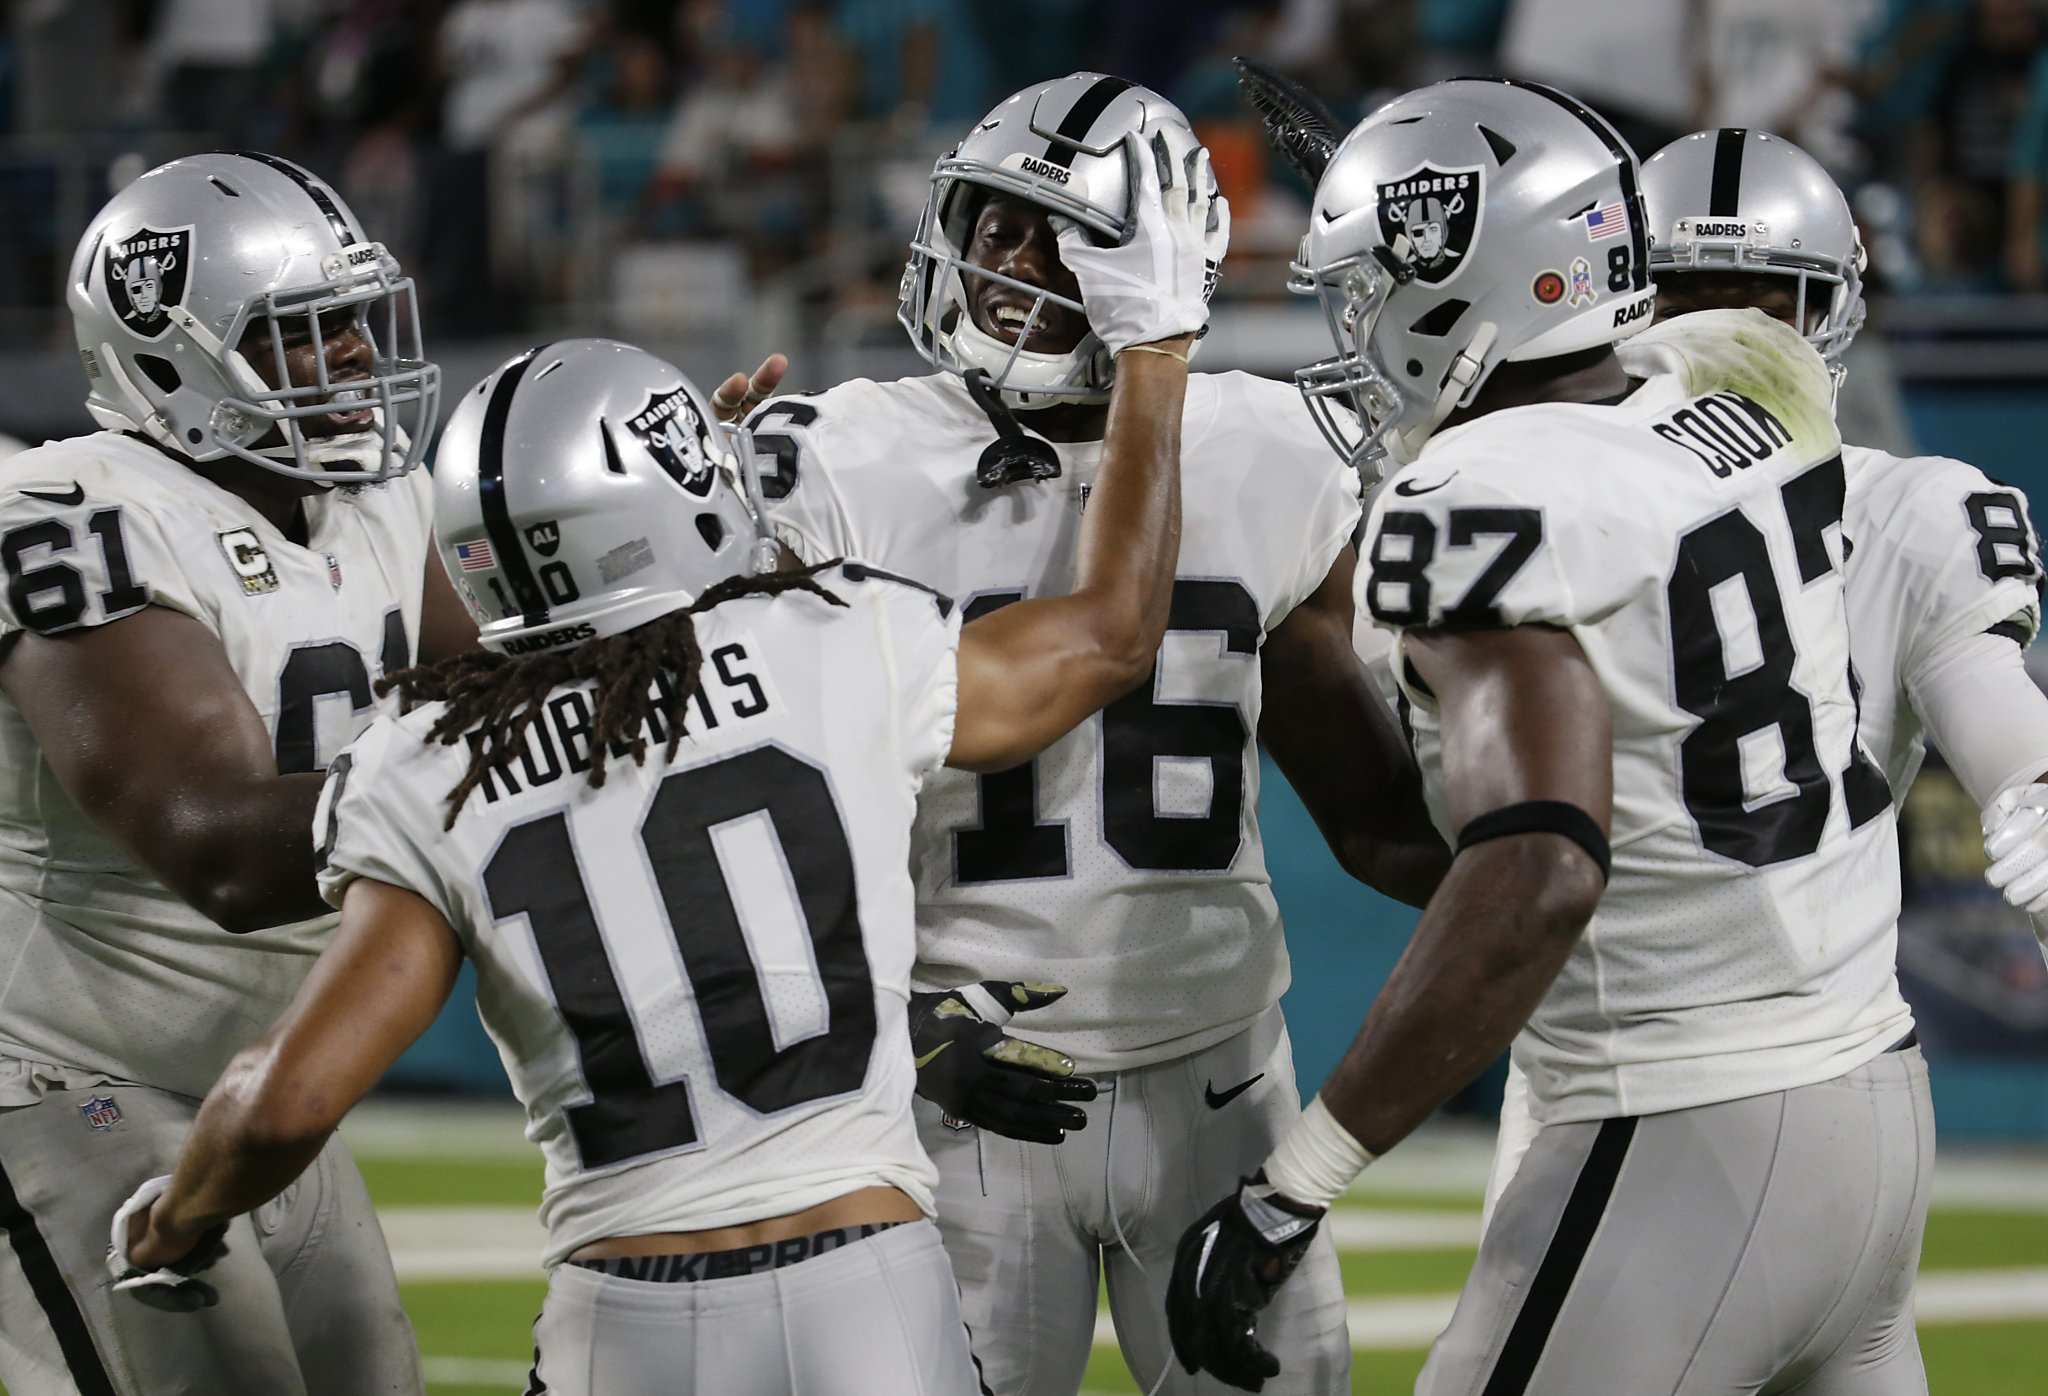 Beleaguered Raiders their must win but what lies ahead San